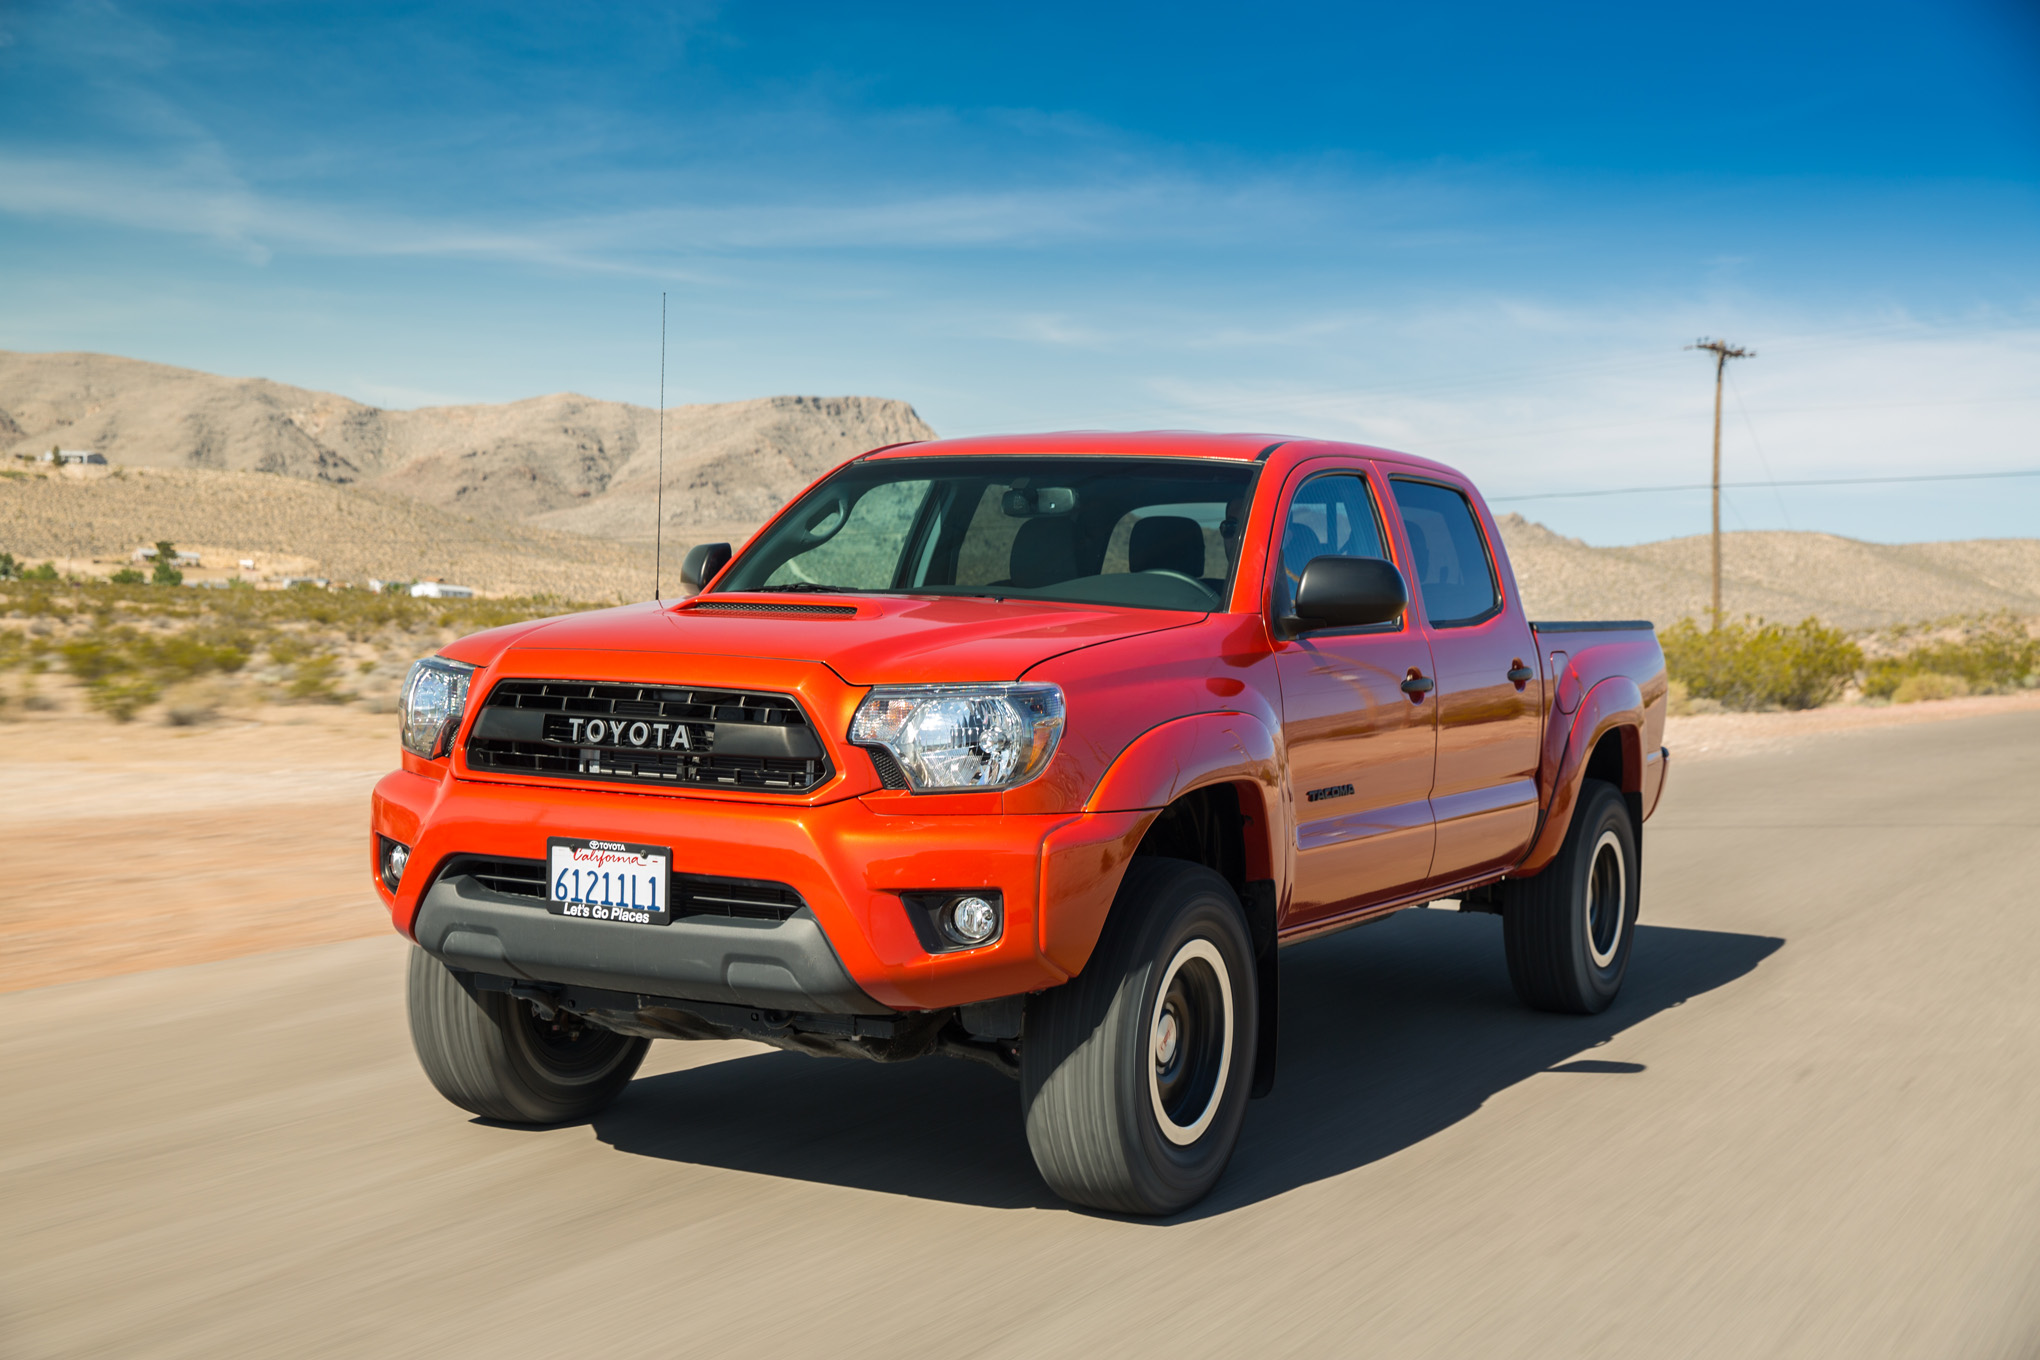 2015 Toyota Tundra Fuse Diagram Wiring Library 2013 4runner Tacoma Schematics Block And Schematic Diagrams U2022 2010